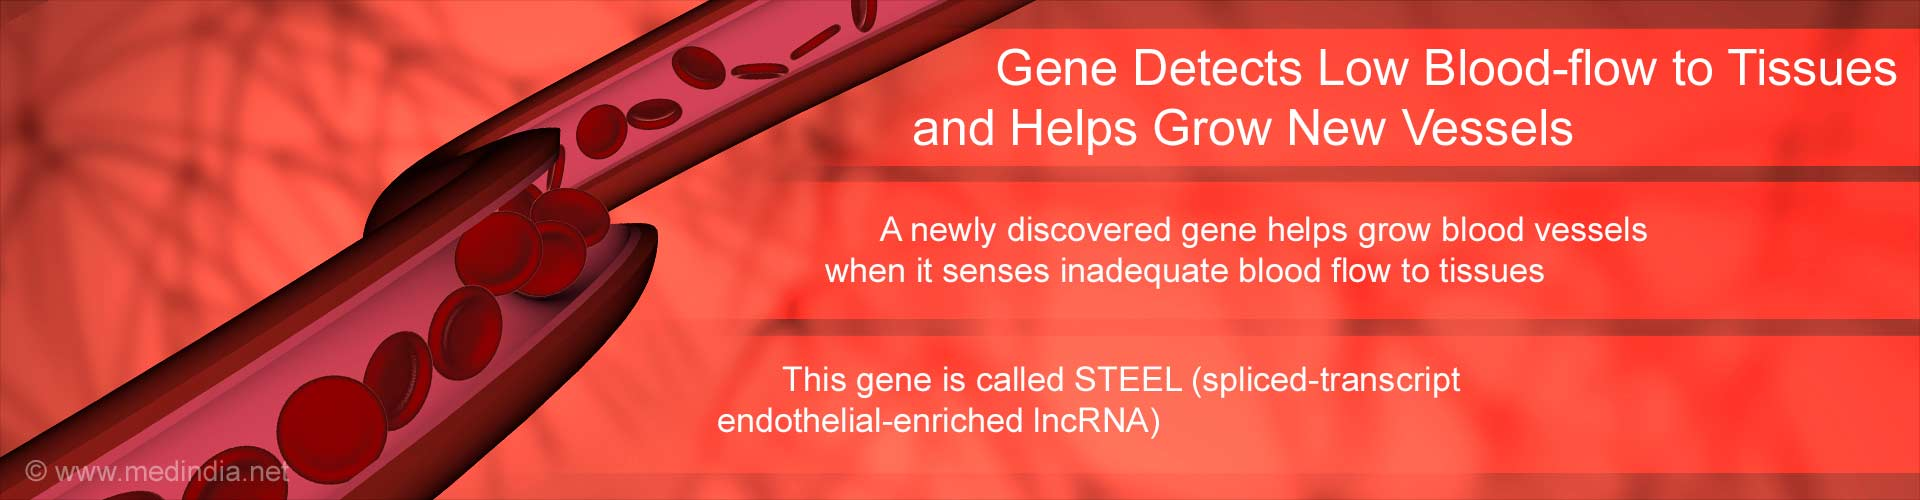 Gene Detects Low Blood-flow to Tissues and Helps Grow New Vessels